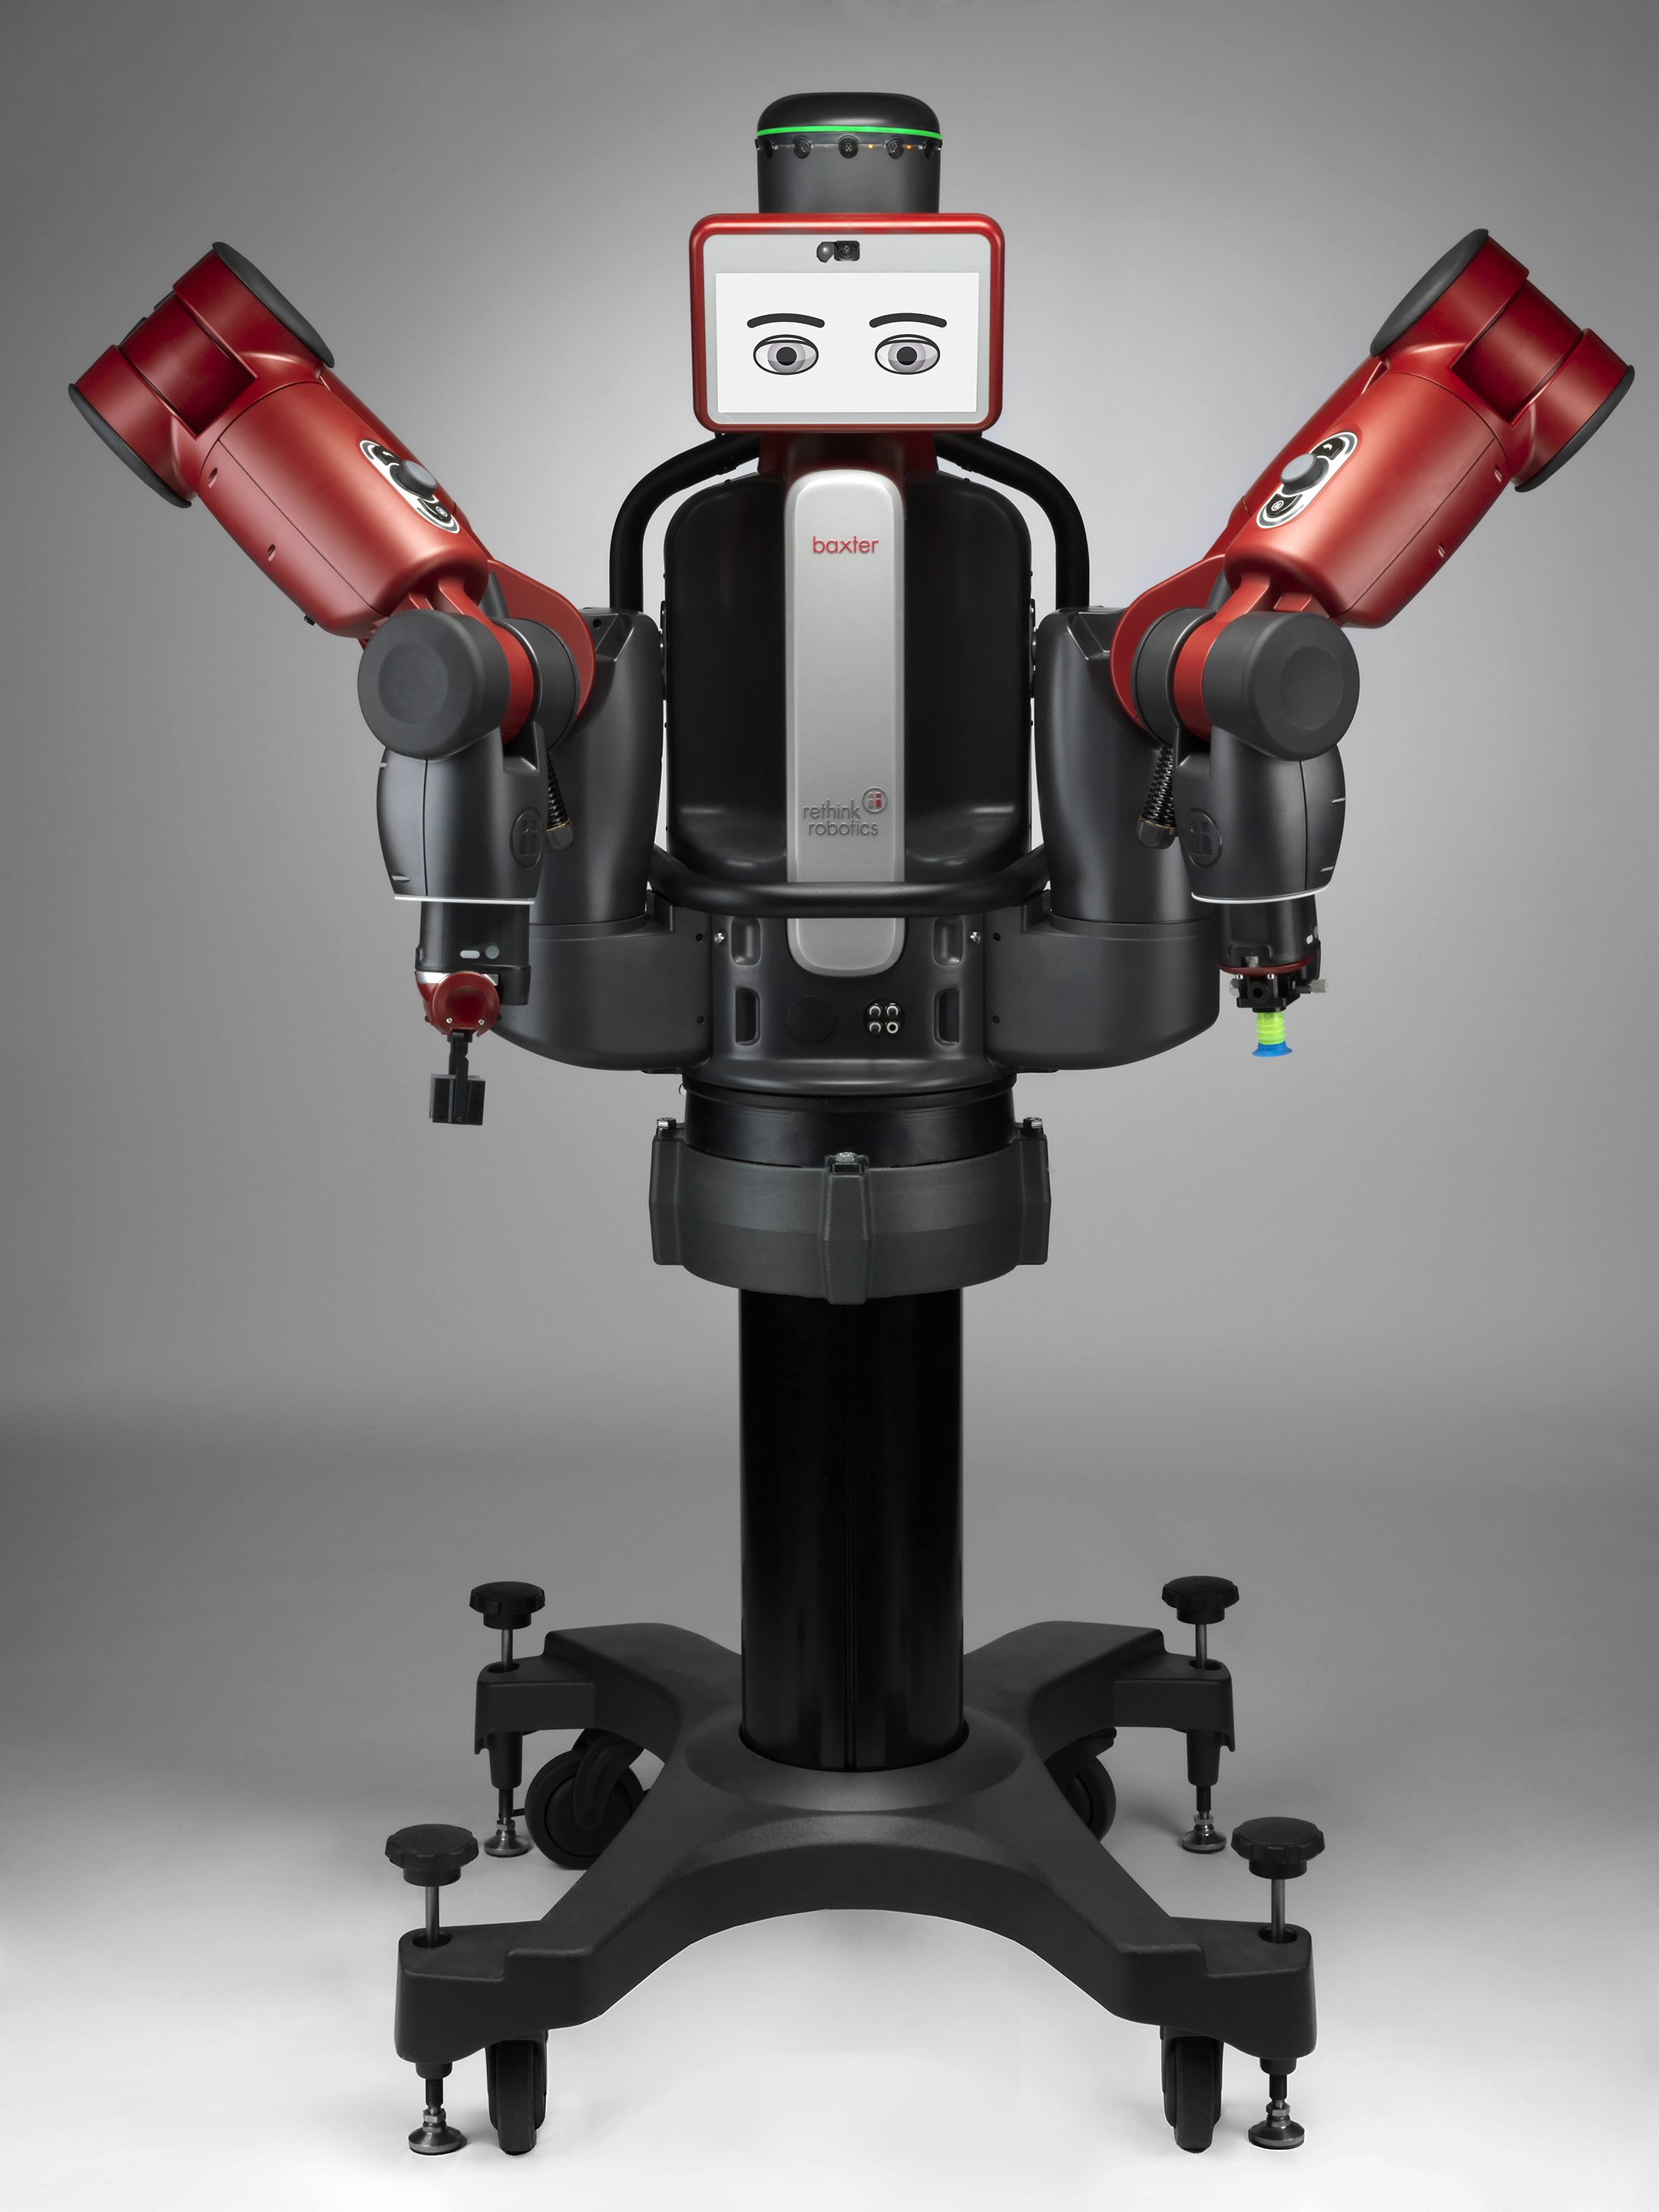 Rethink_Robotics_Baxter_gray_bkground